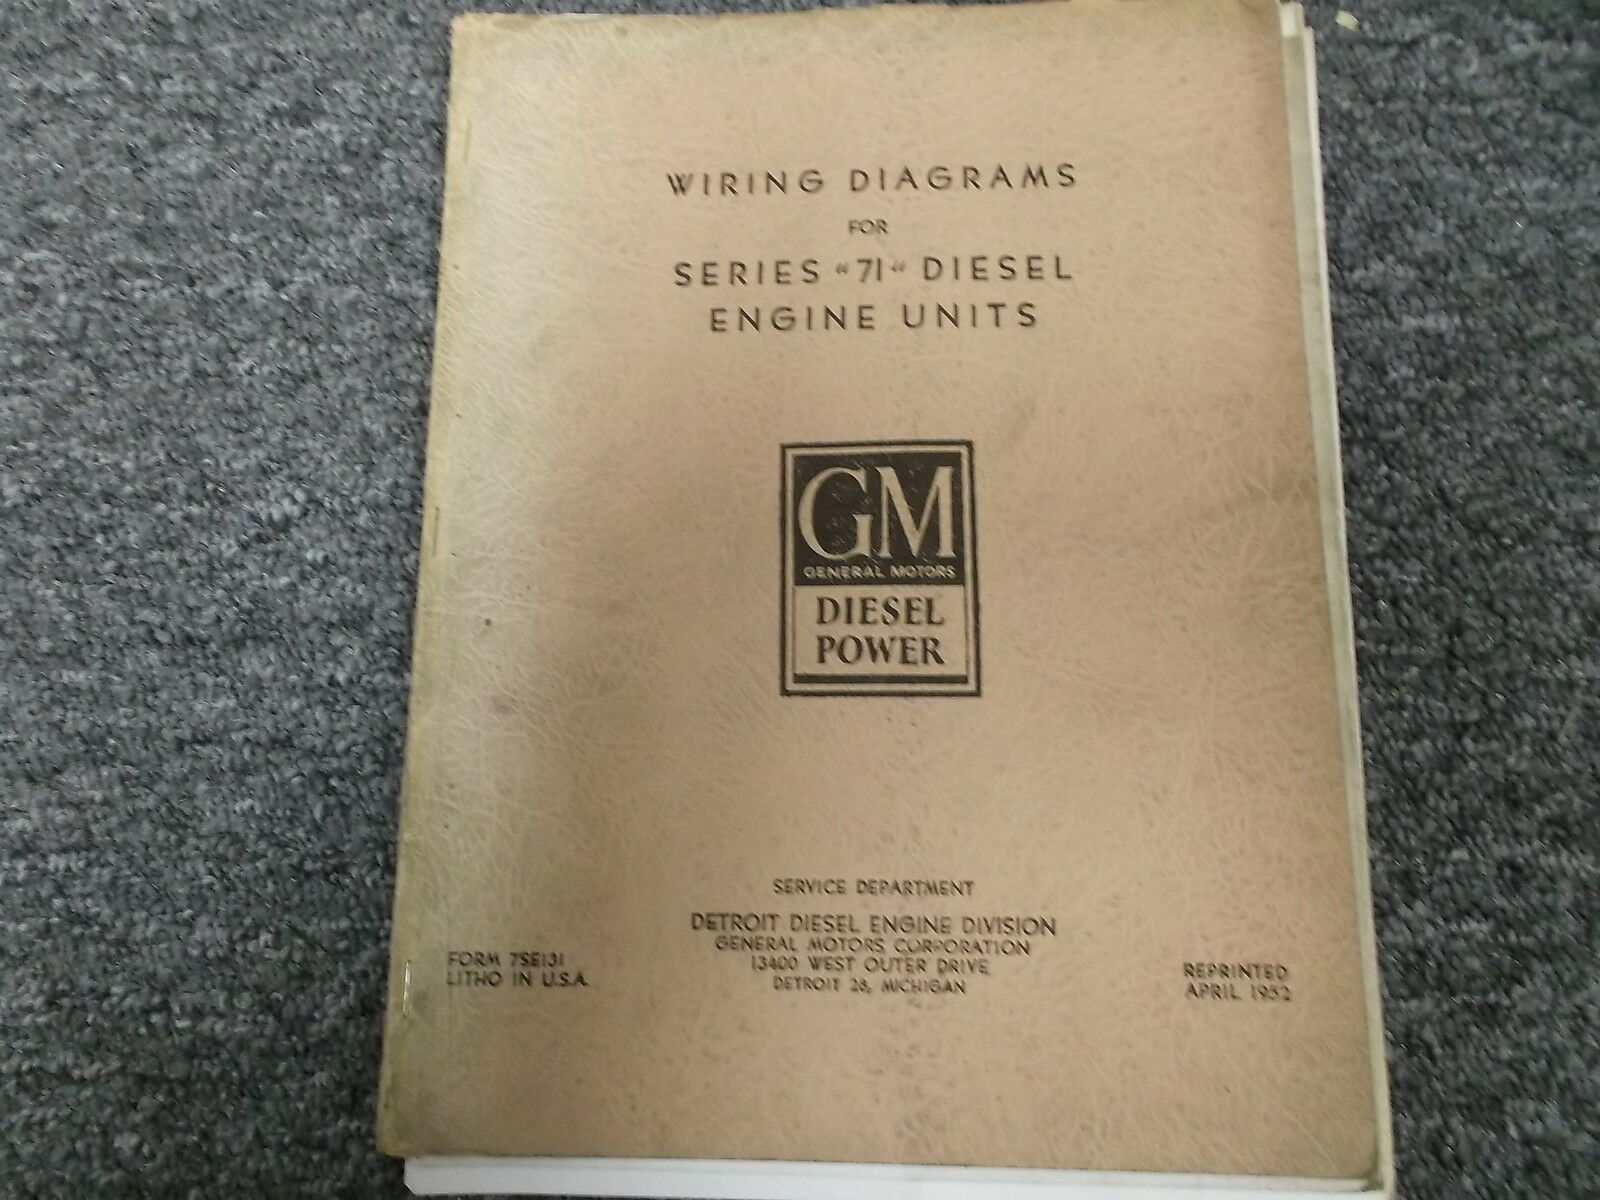 Detroit Diesel Gm 3 71 4 6 Series Electrical Wiring Schematics 1 Of 1only Available